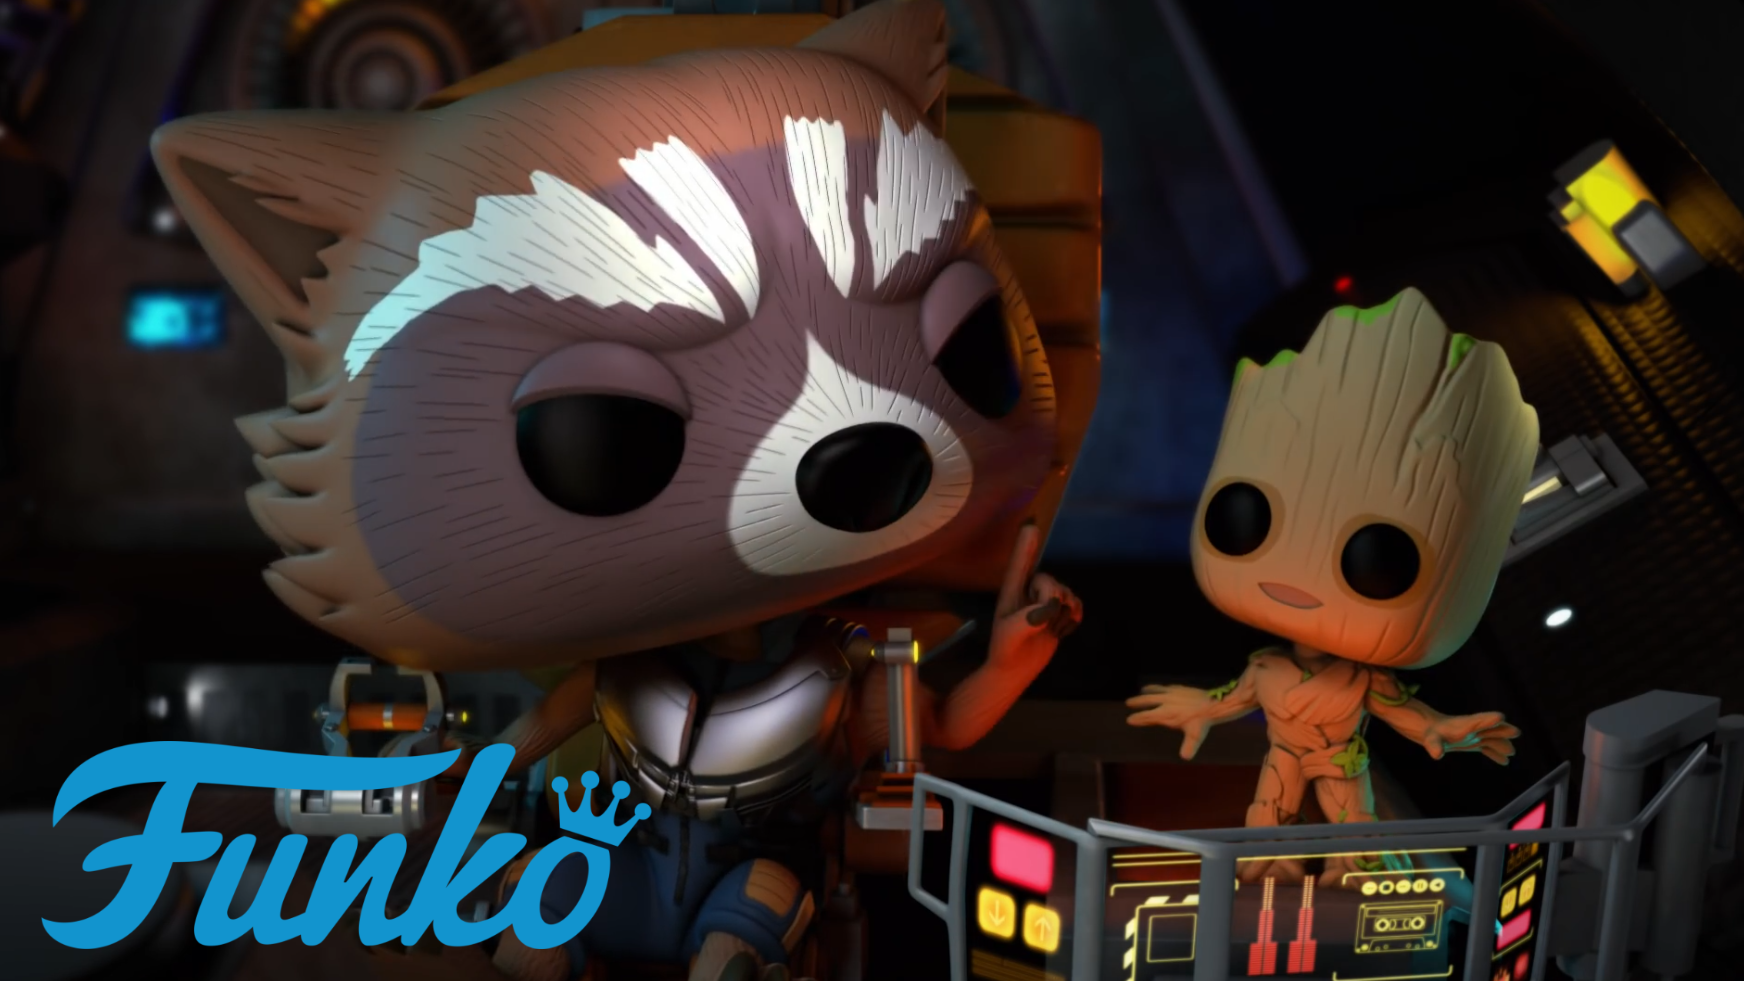 FUNKO 'POP!' RIGGING [A BIG EVIL CORPORATION] (2017)   Flex Animation provided stylised rigs for A Big Evil Corporation's 'Pop!' vinyl product teasers and shorts.   Read more...